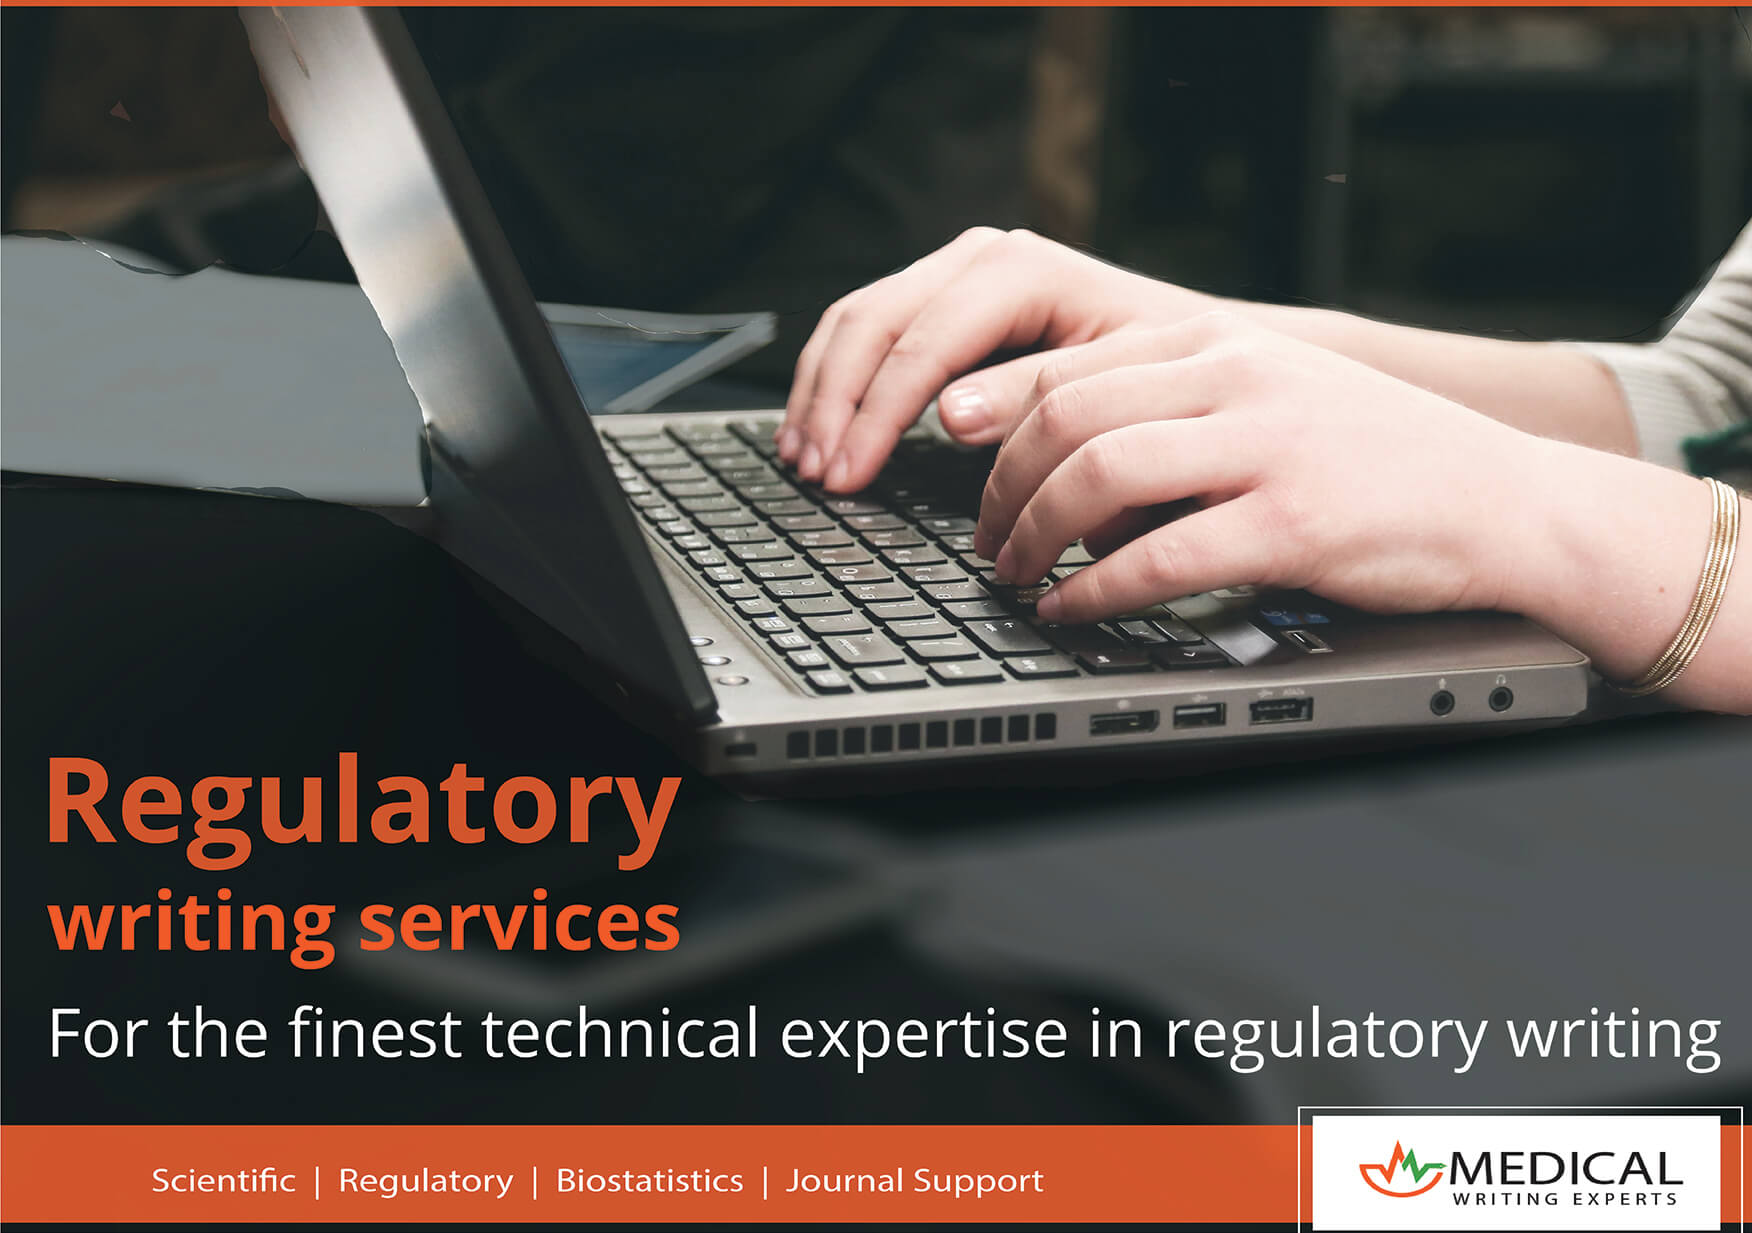 Image for Regulatory writing services - Medical writing services